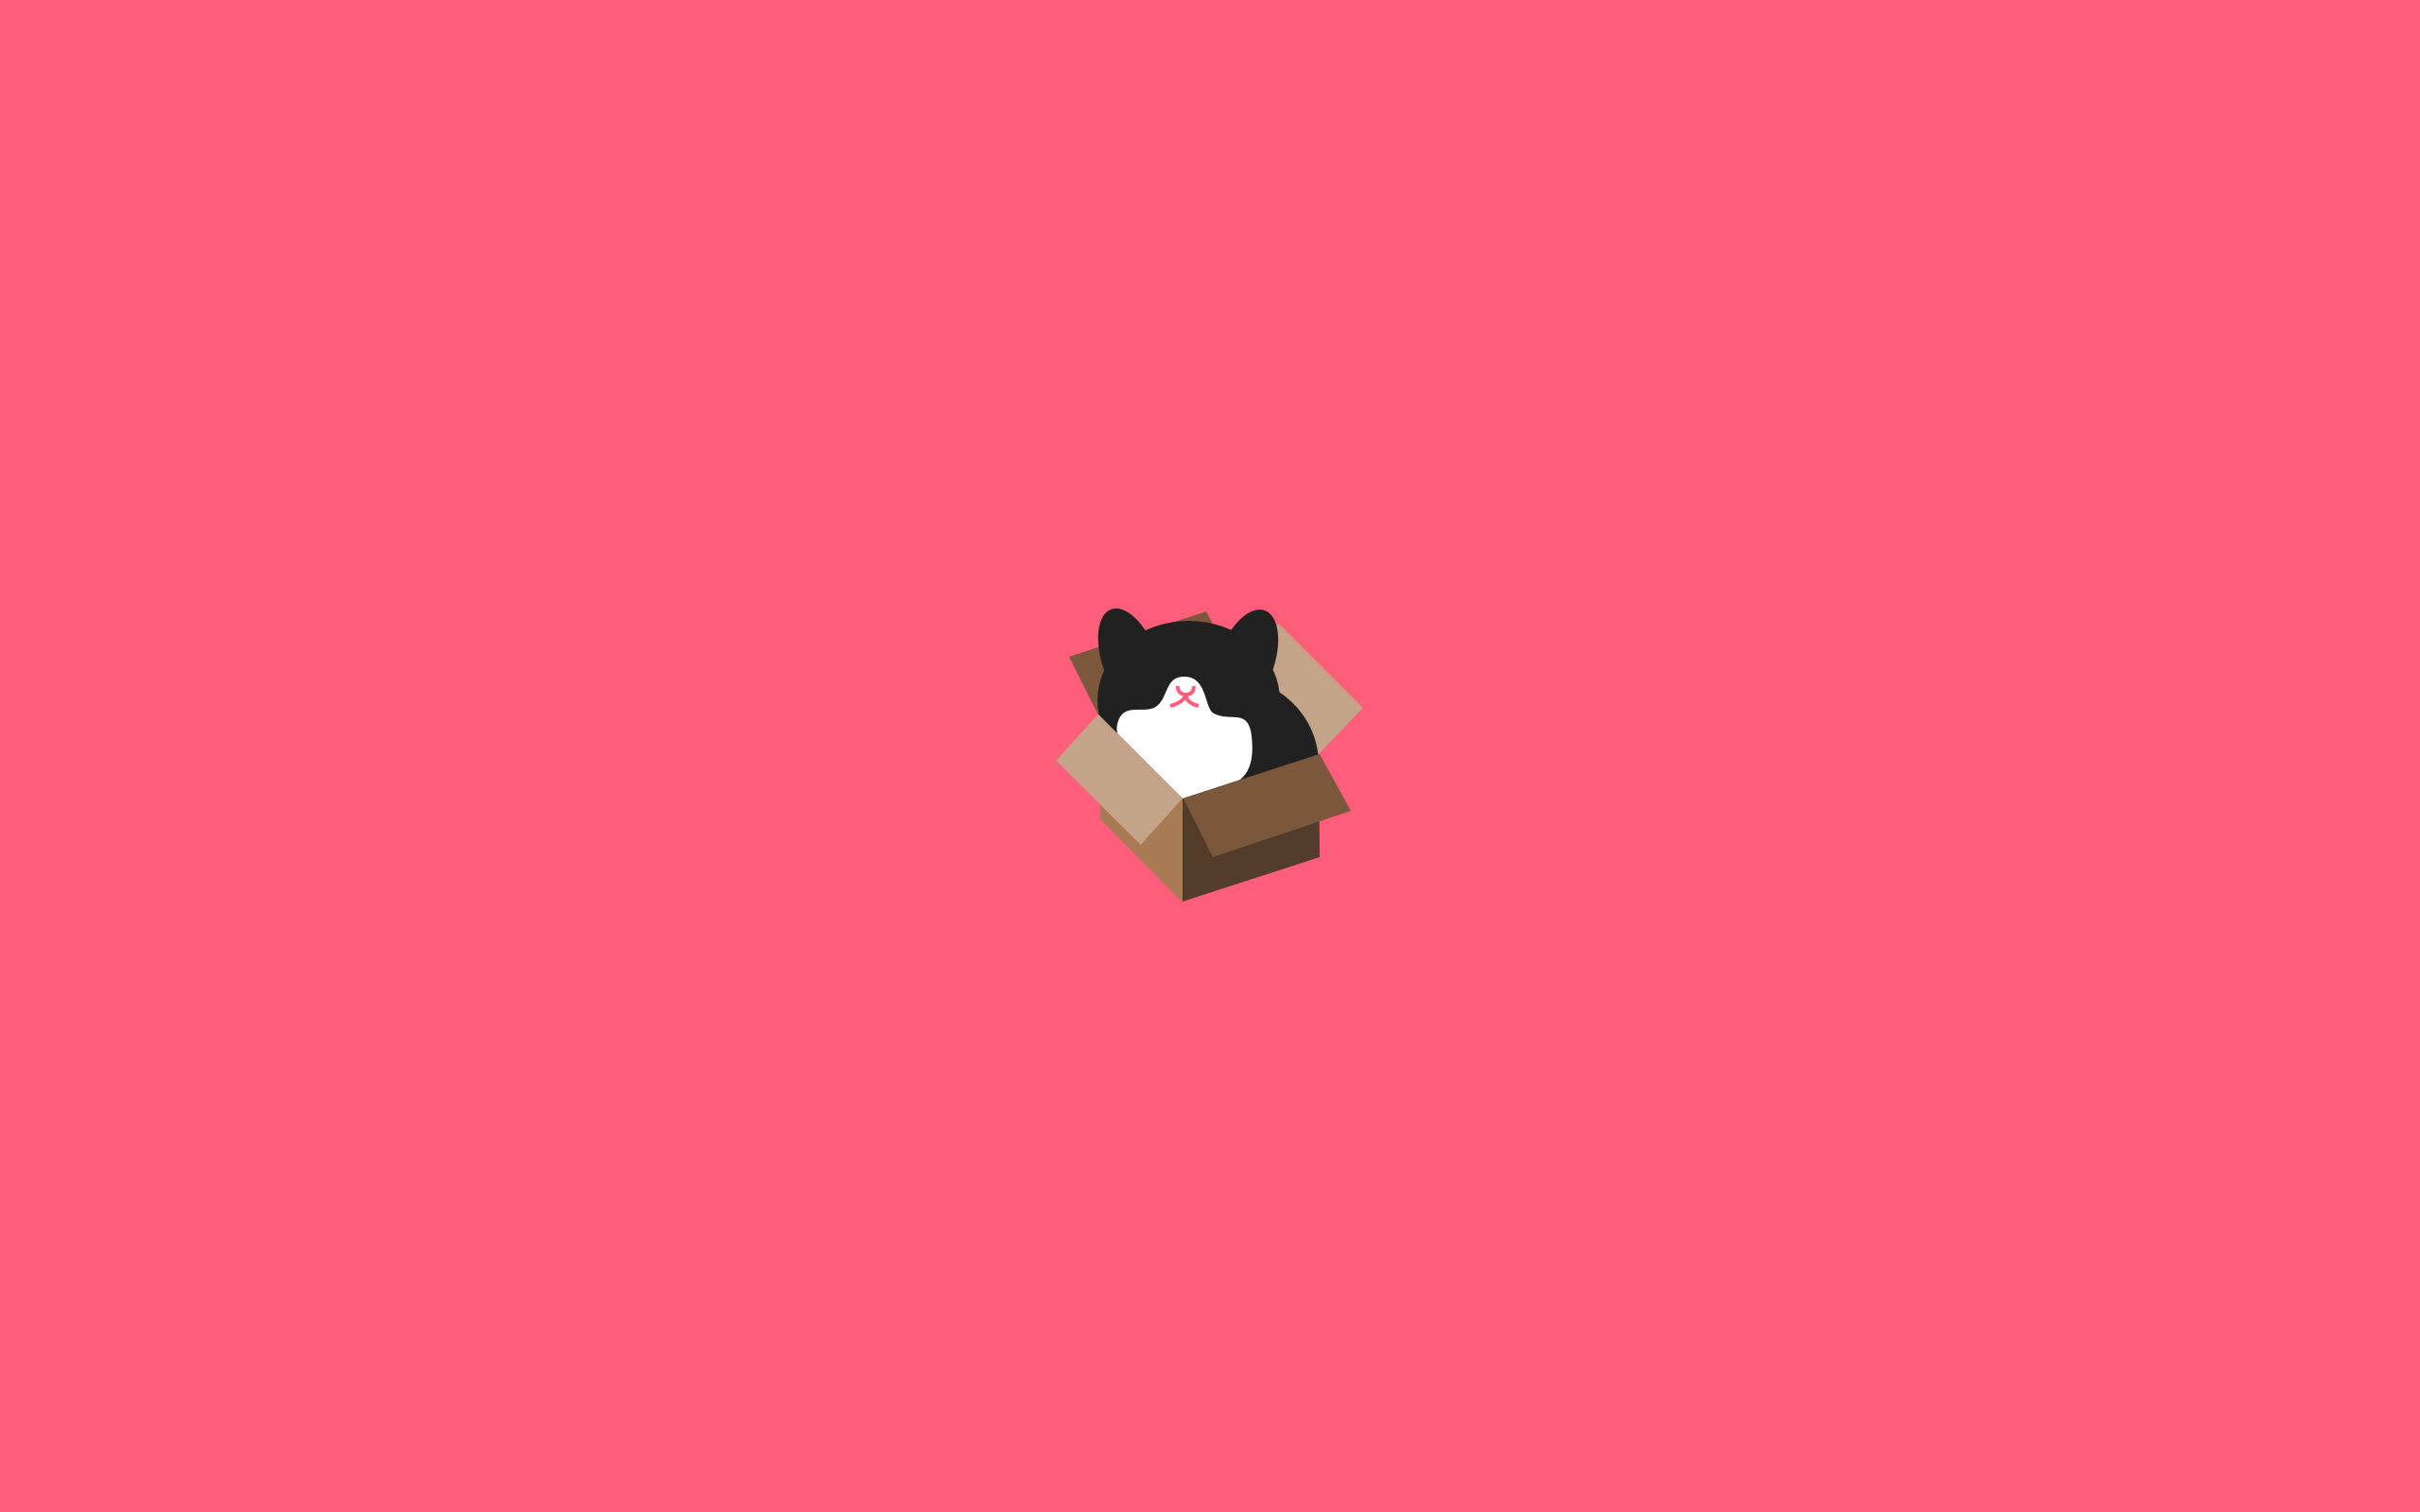 Minimalism Pink Wallpapers High Quality | Download Free